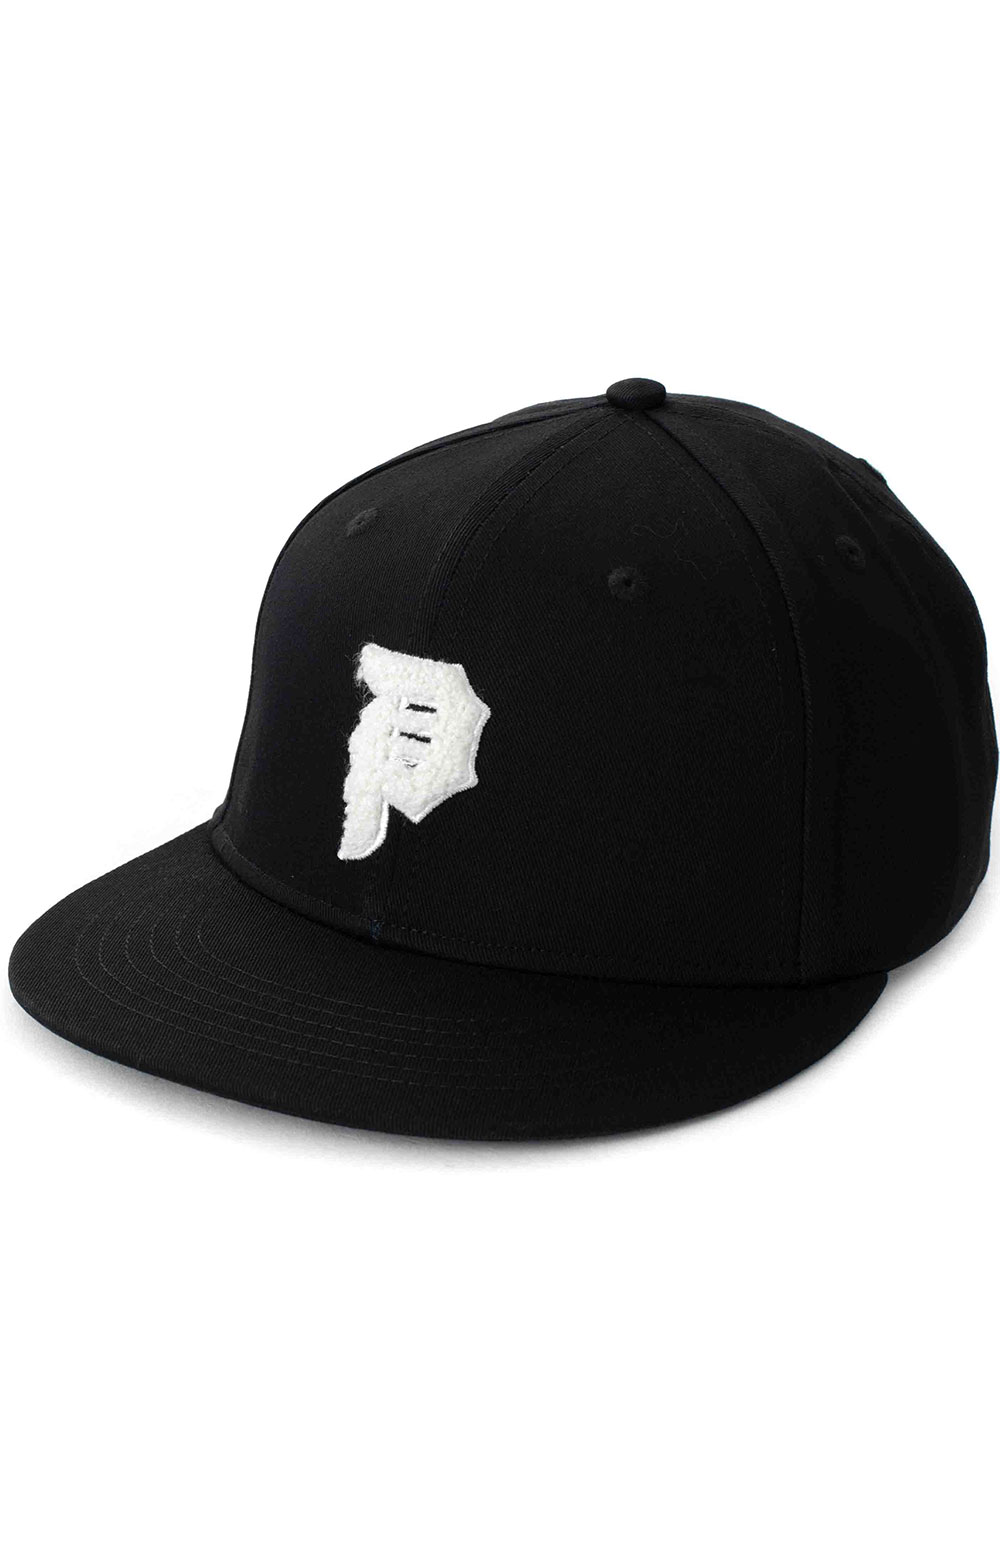 Dirty P Chenille Snap-Back Hat - Black